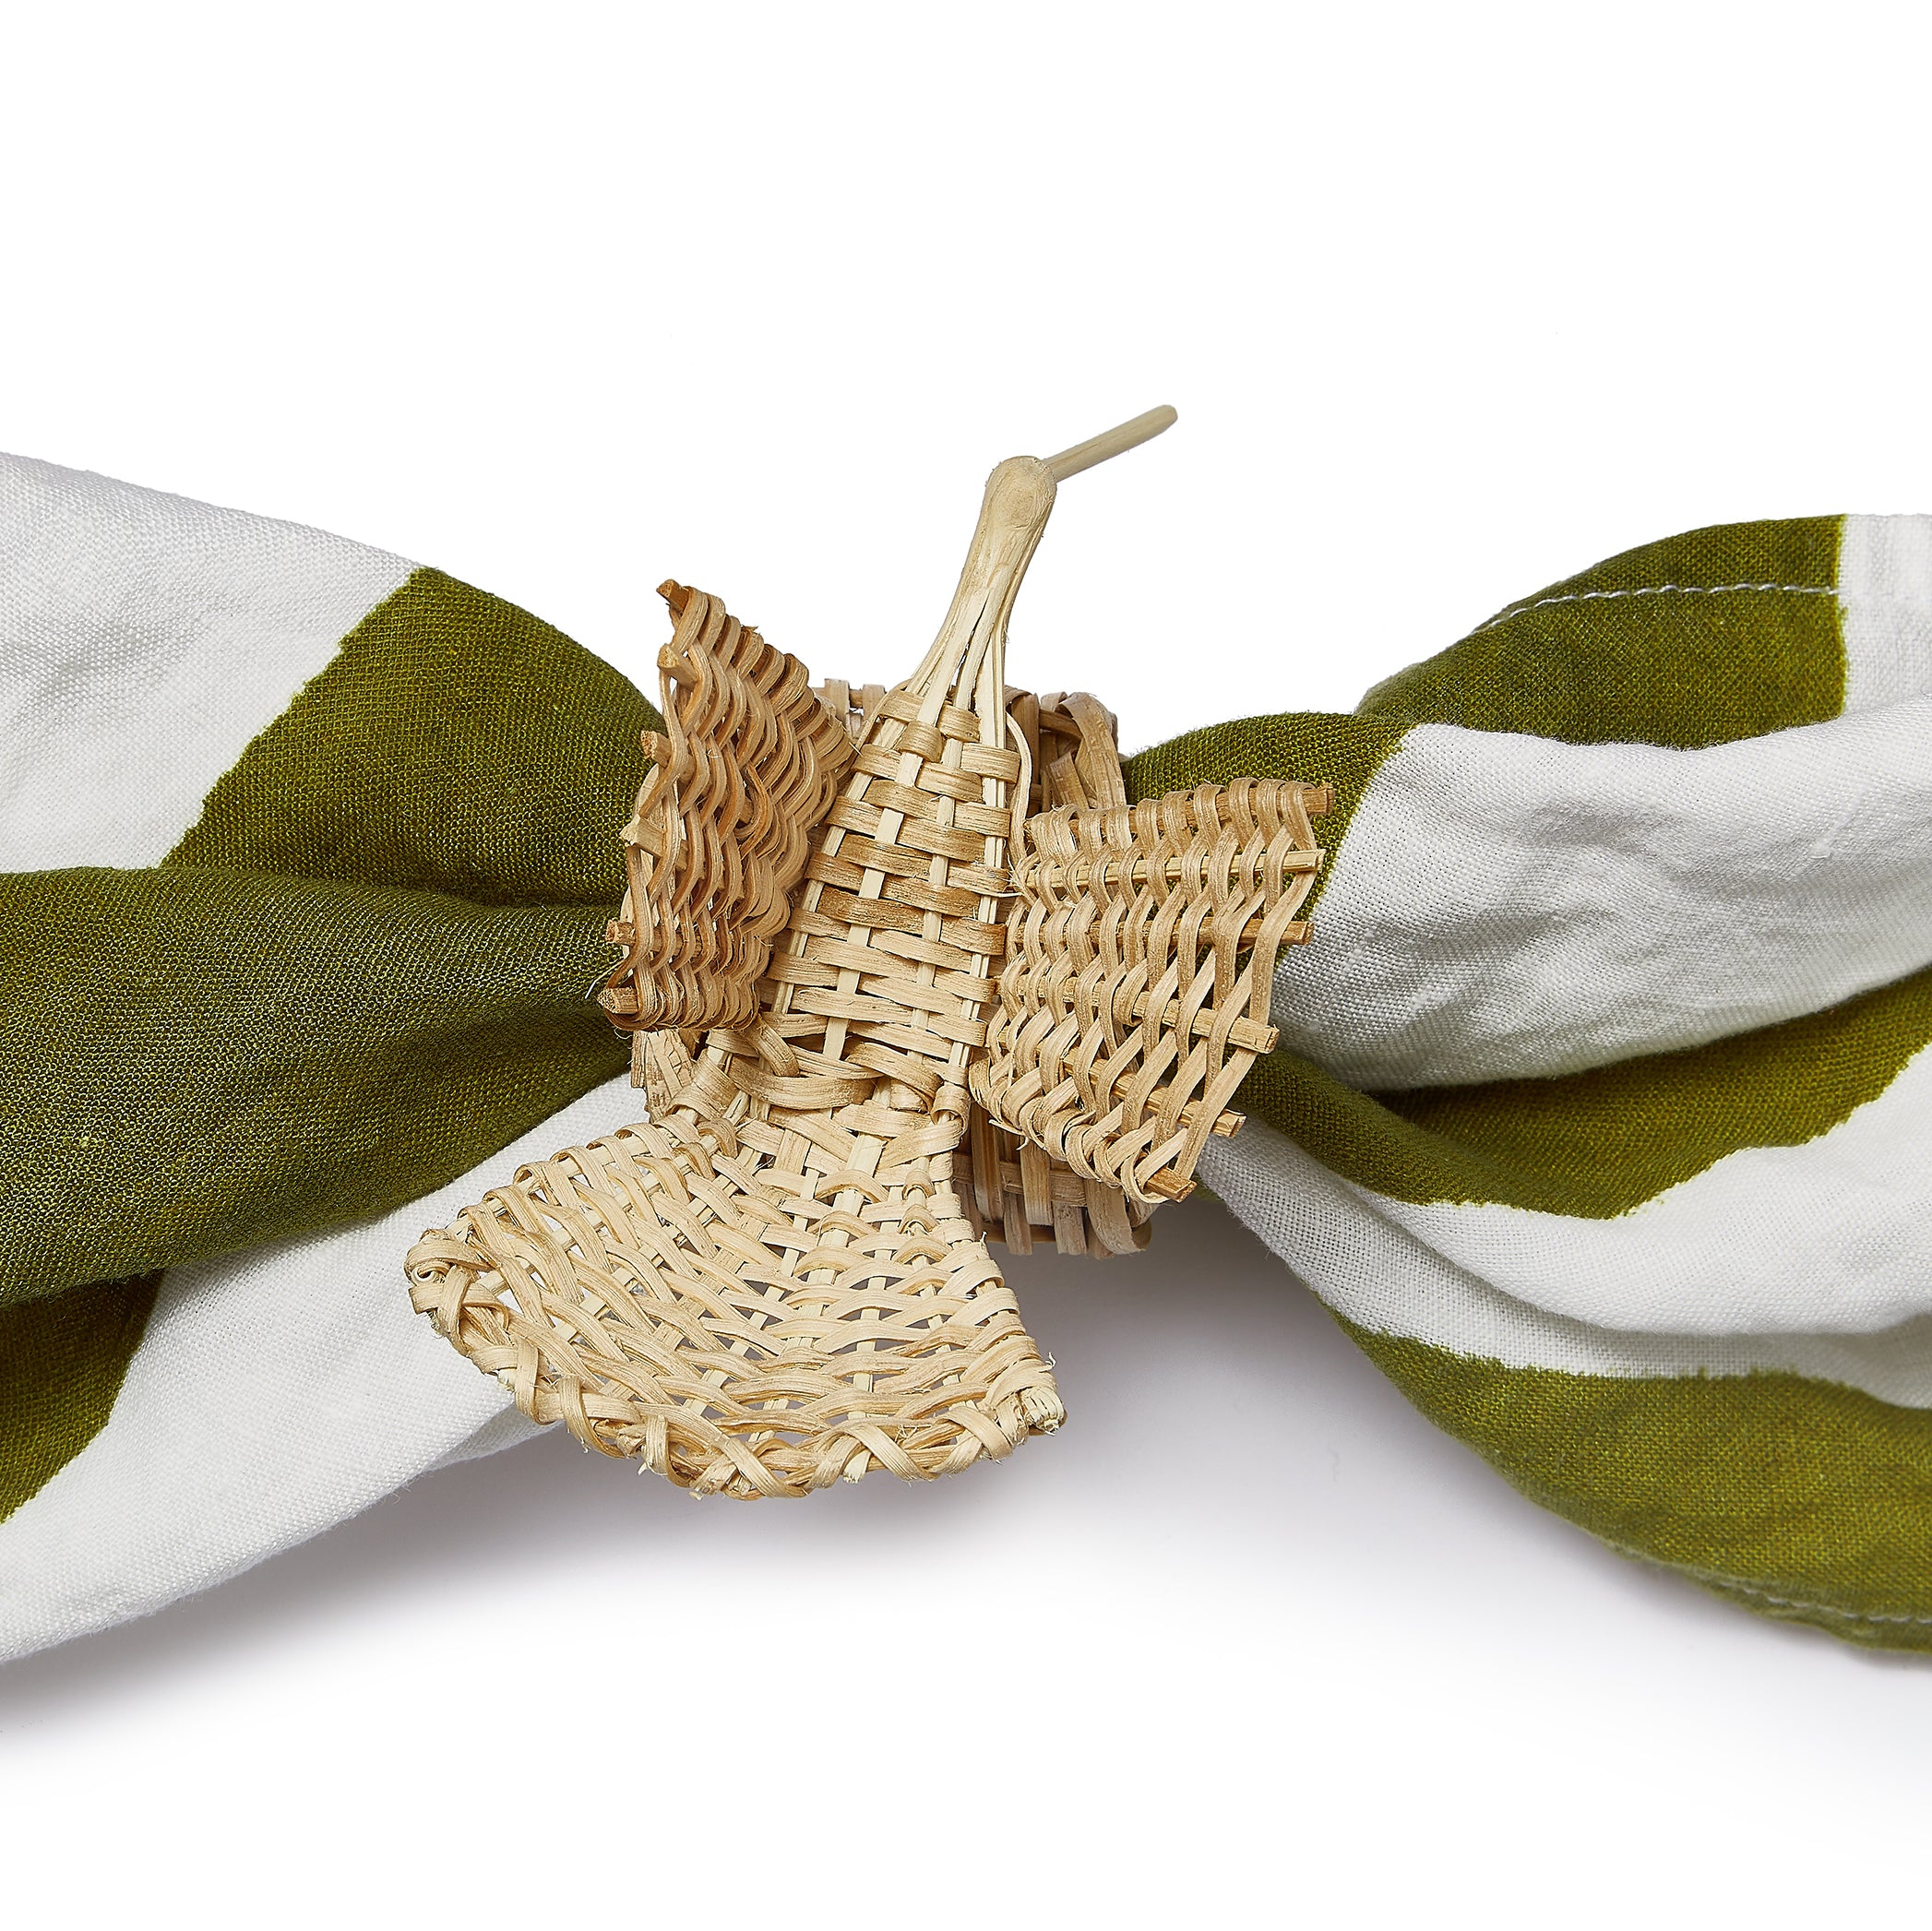 Handwoven Hummingbird Napkin Ring in Natural